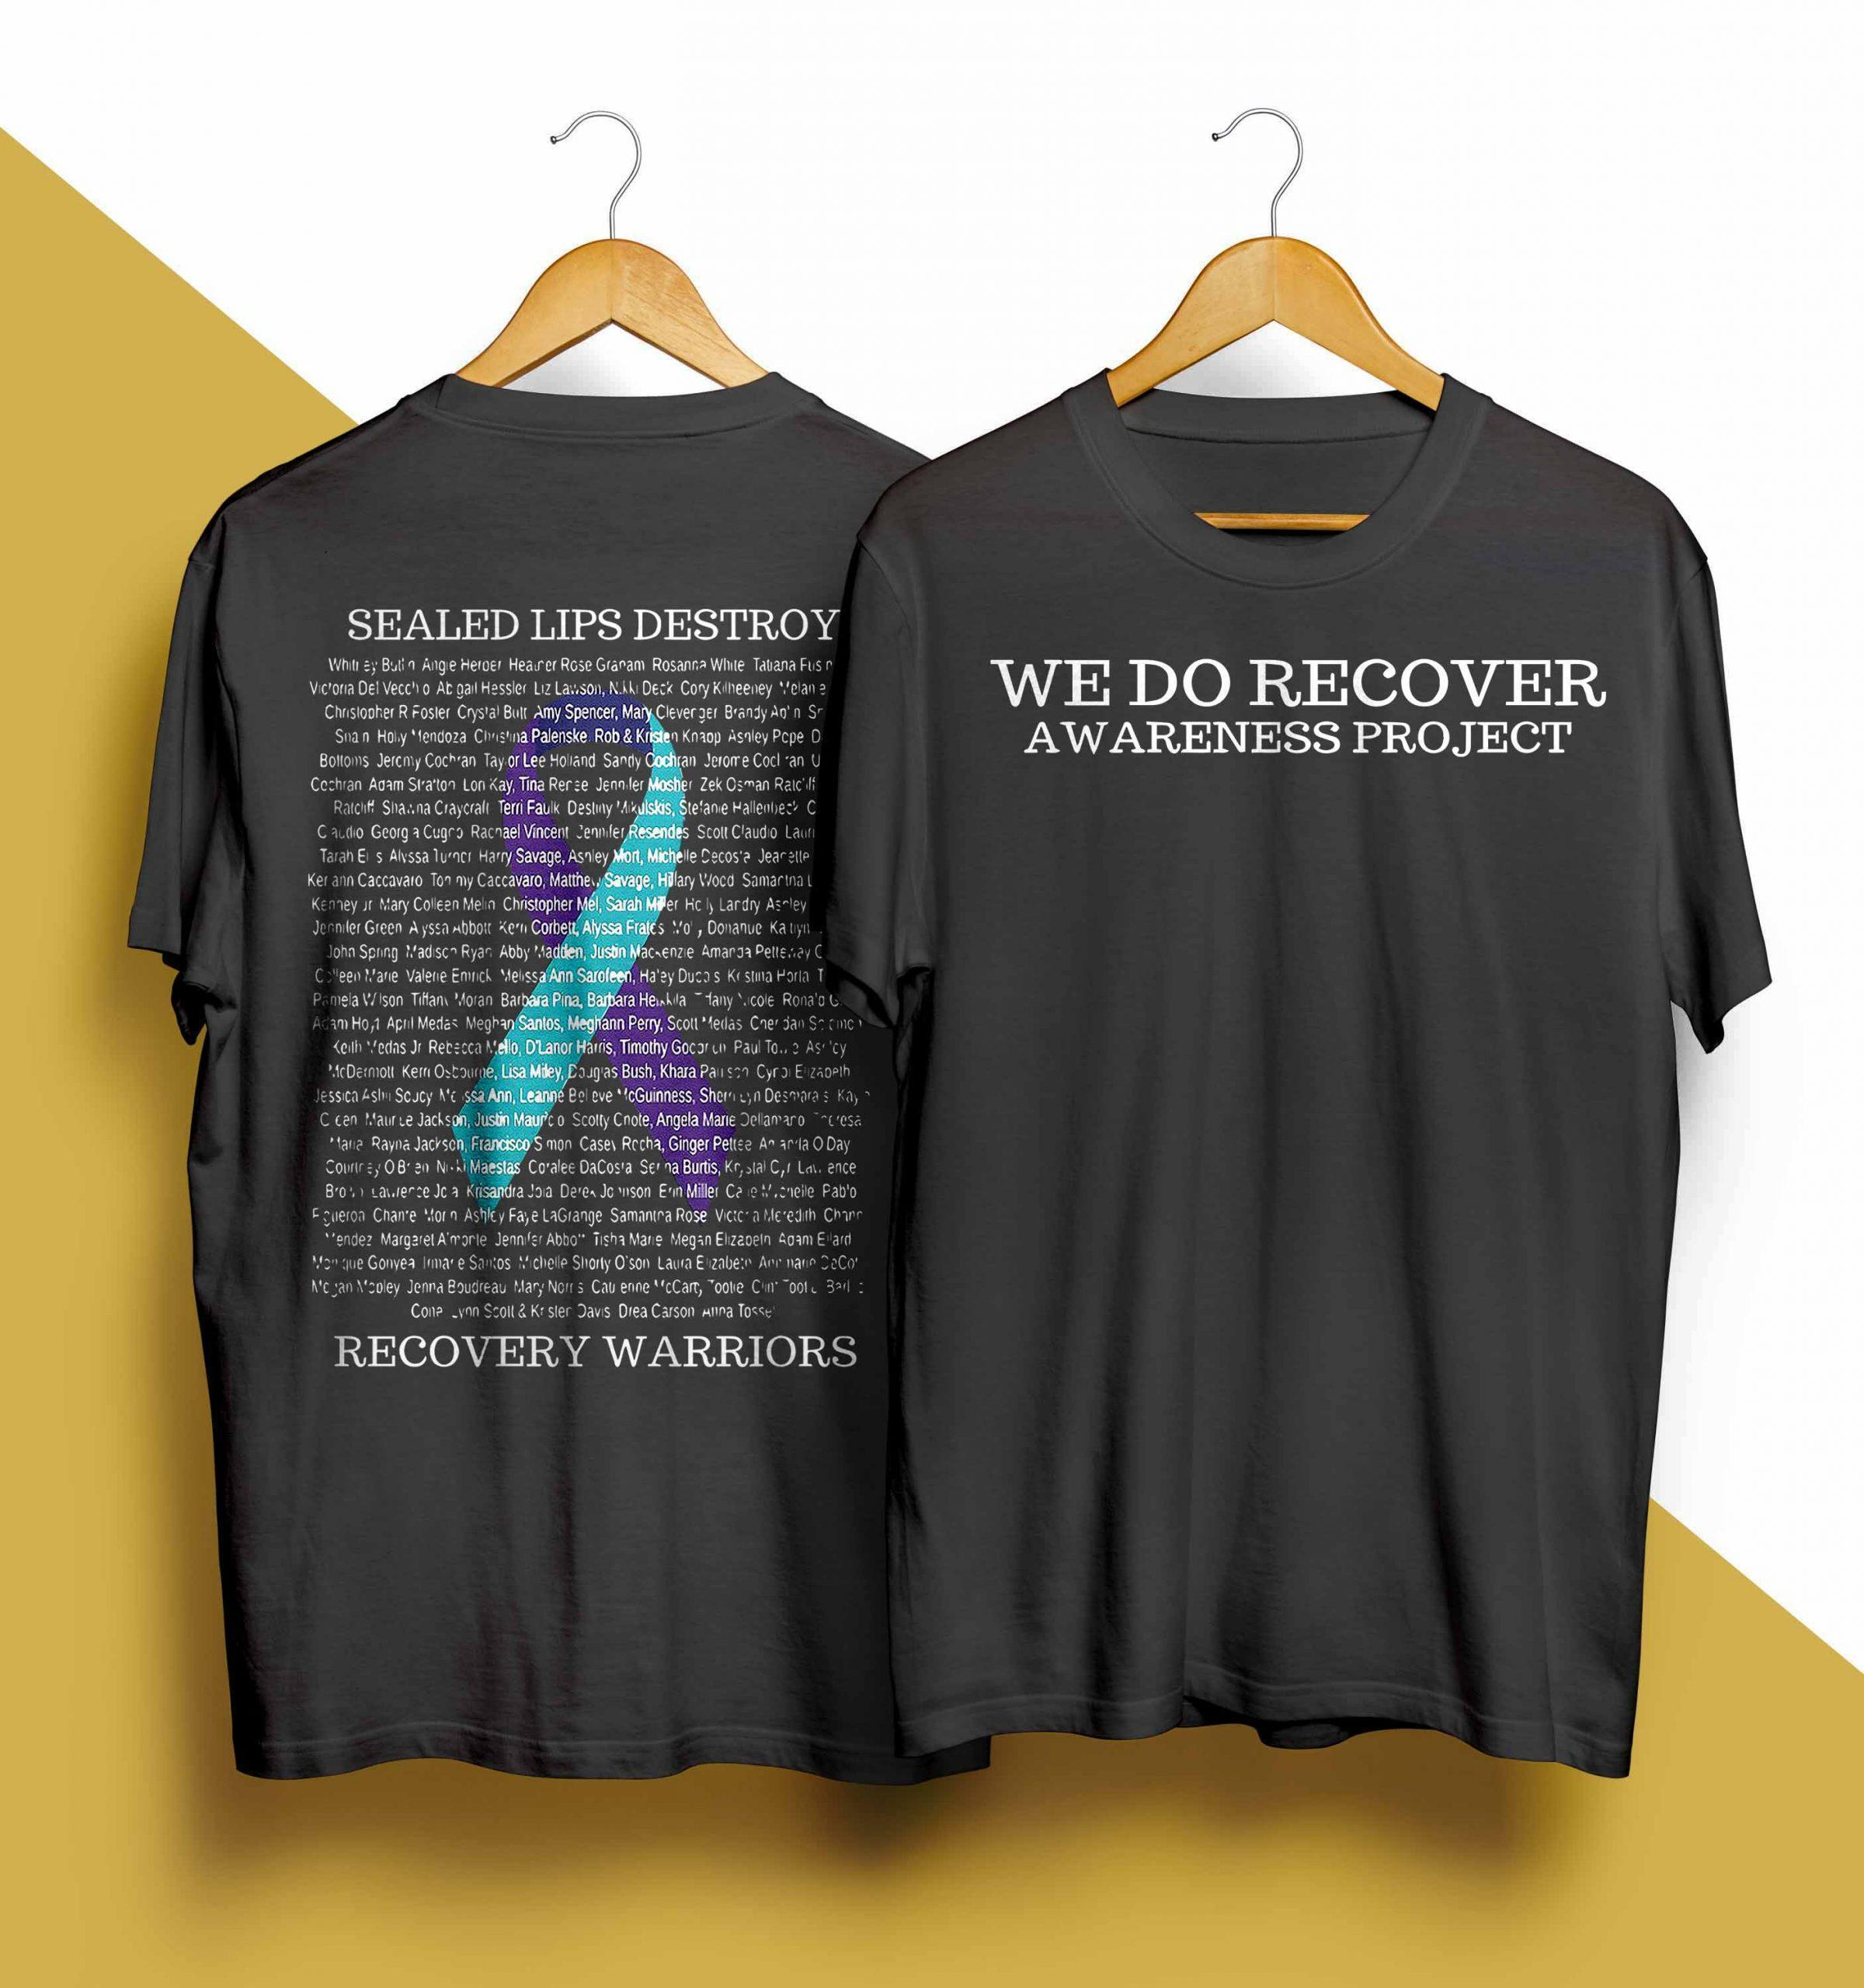 We Do Recover Awareness Project Sealed Lips Destroy Shirt